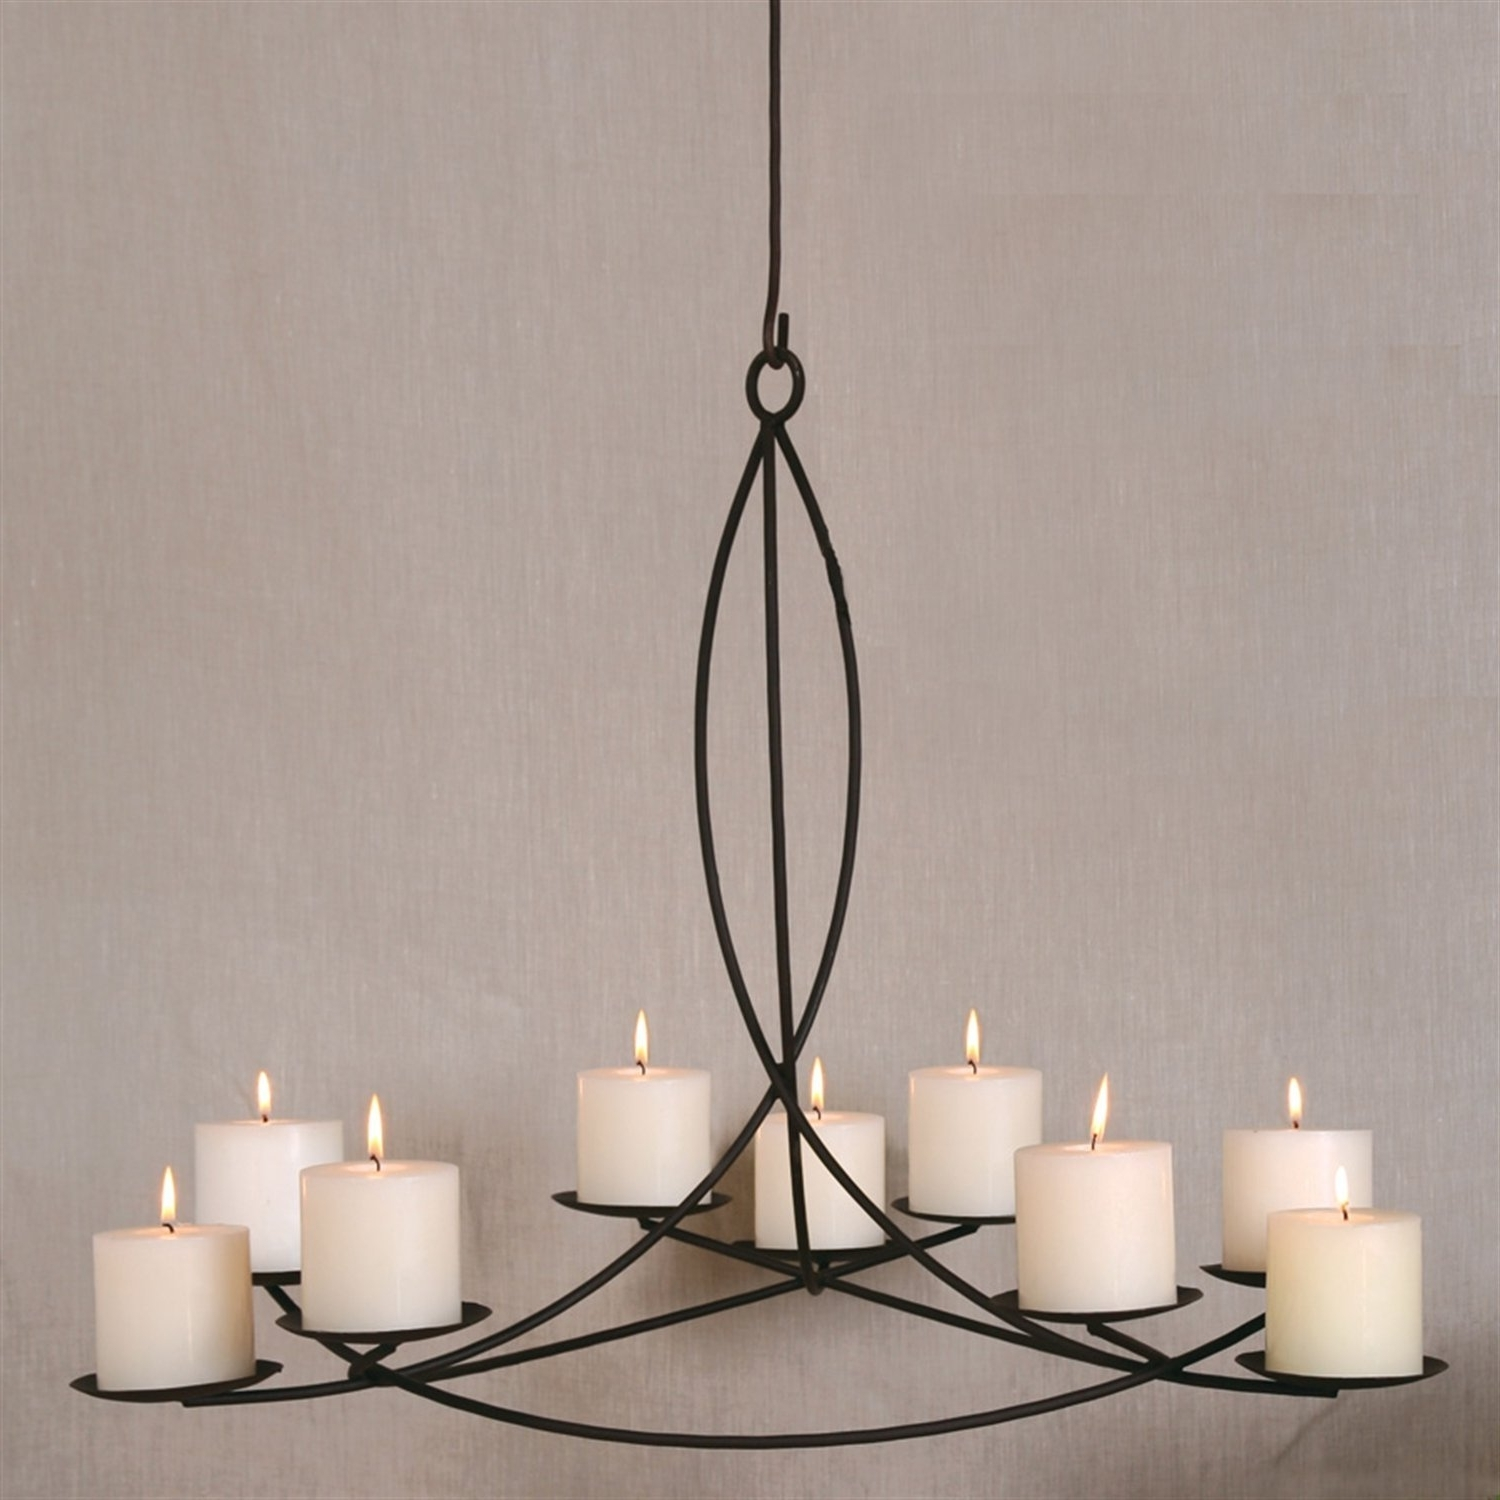 Hanging Candle Chandeliers Within Recent Beautiful And Elegant Candle Chandelier — Best Home Decor Ideas (View 9 of 20)